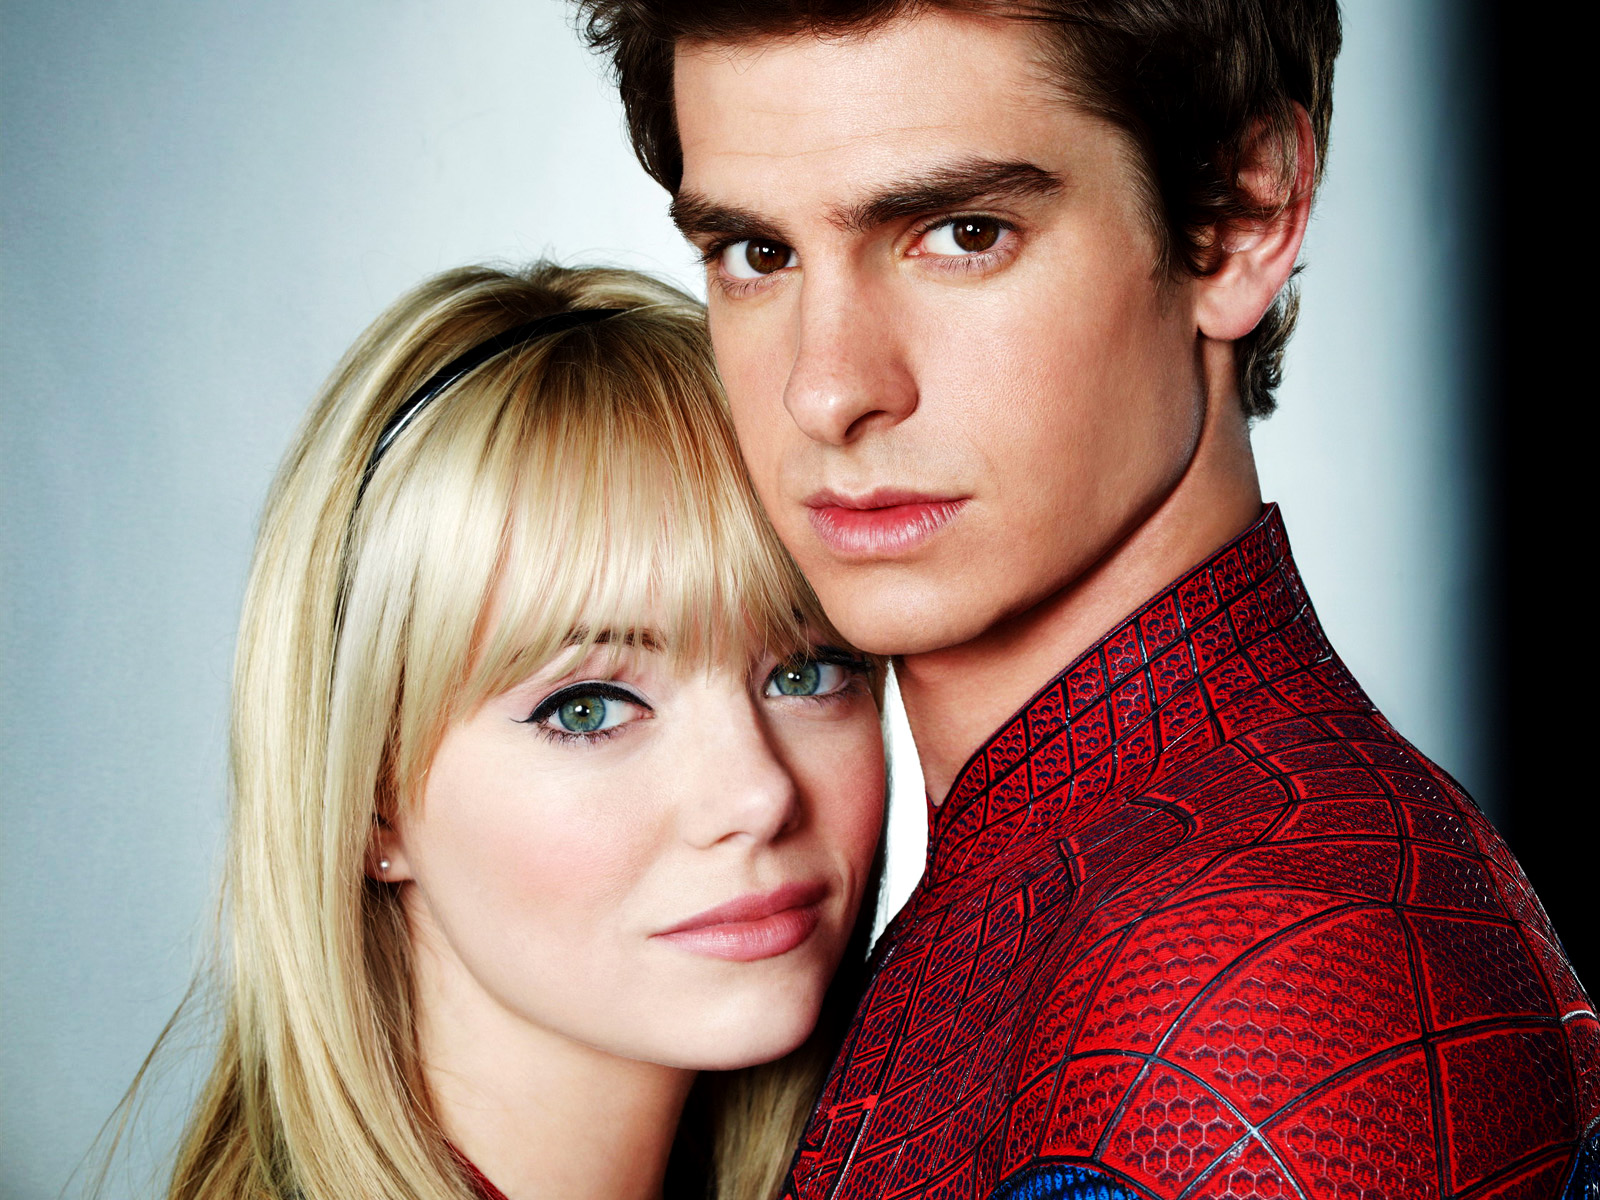 Emma Stone The Amazing Spider Man gallery Digital Spy - emma stone in the amazing spider man wallpapers